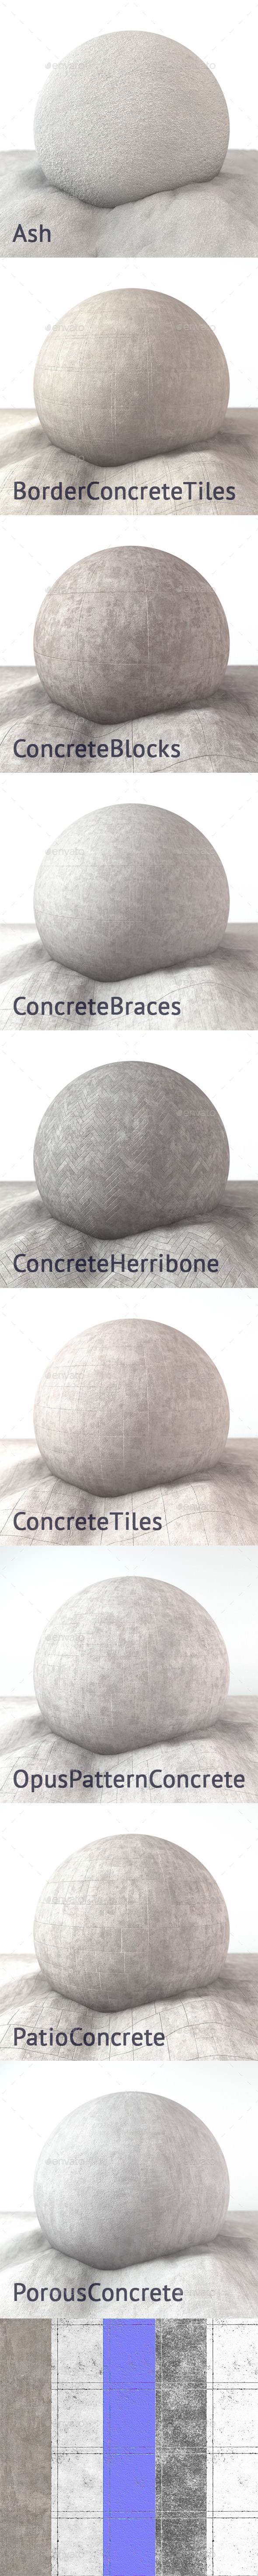 Concrete 4K Texture set 9 items - 3DOcean Item for Sale